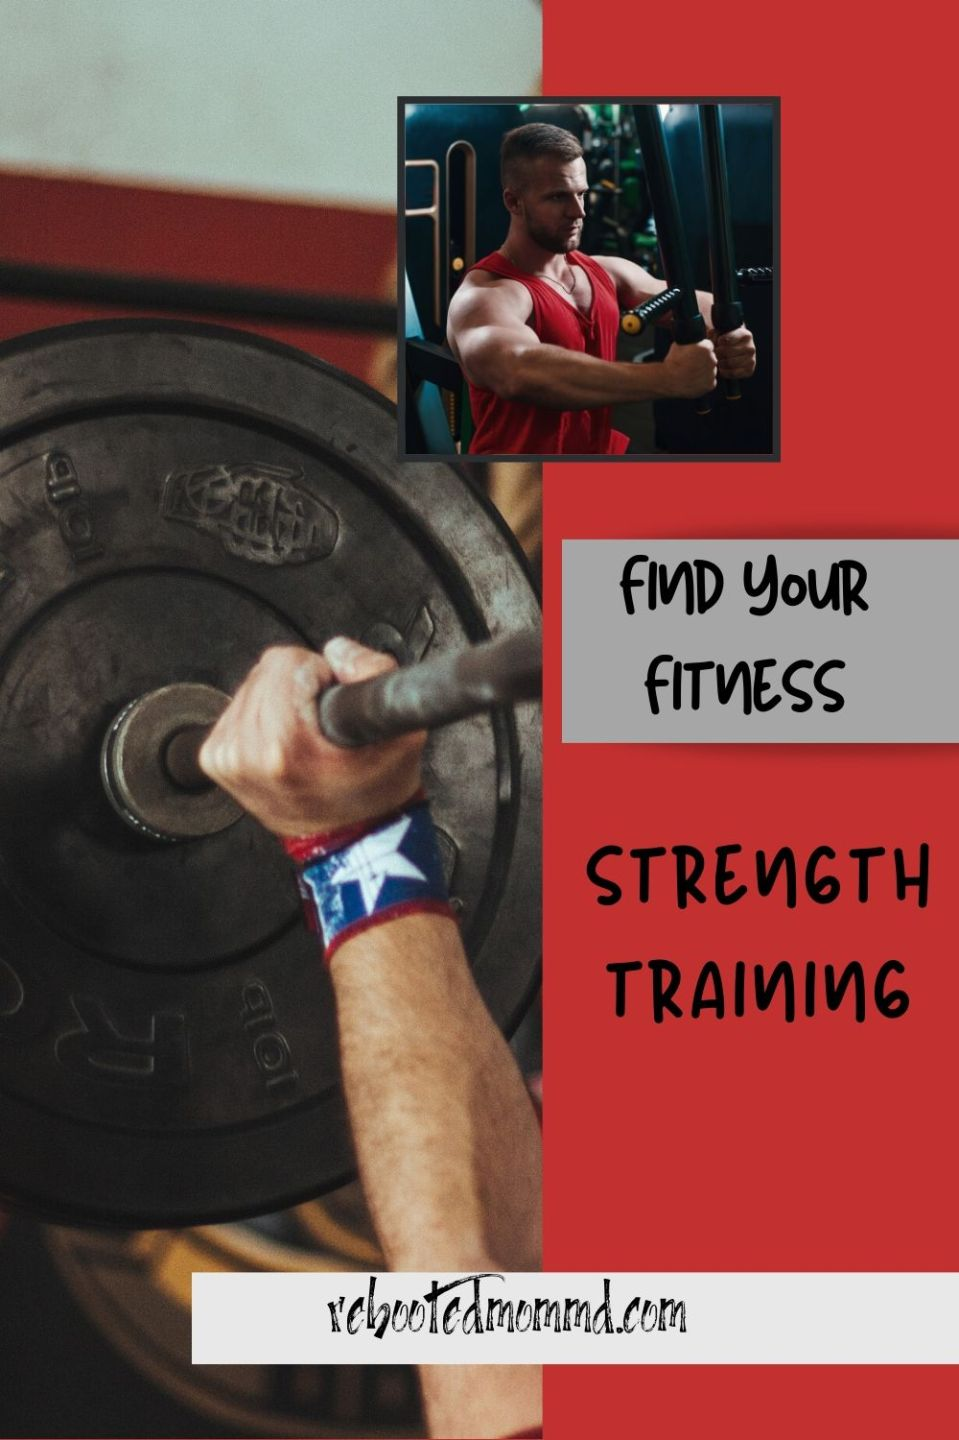 Find Your Fitness: Strength Training